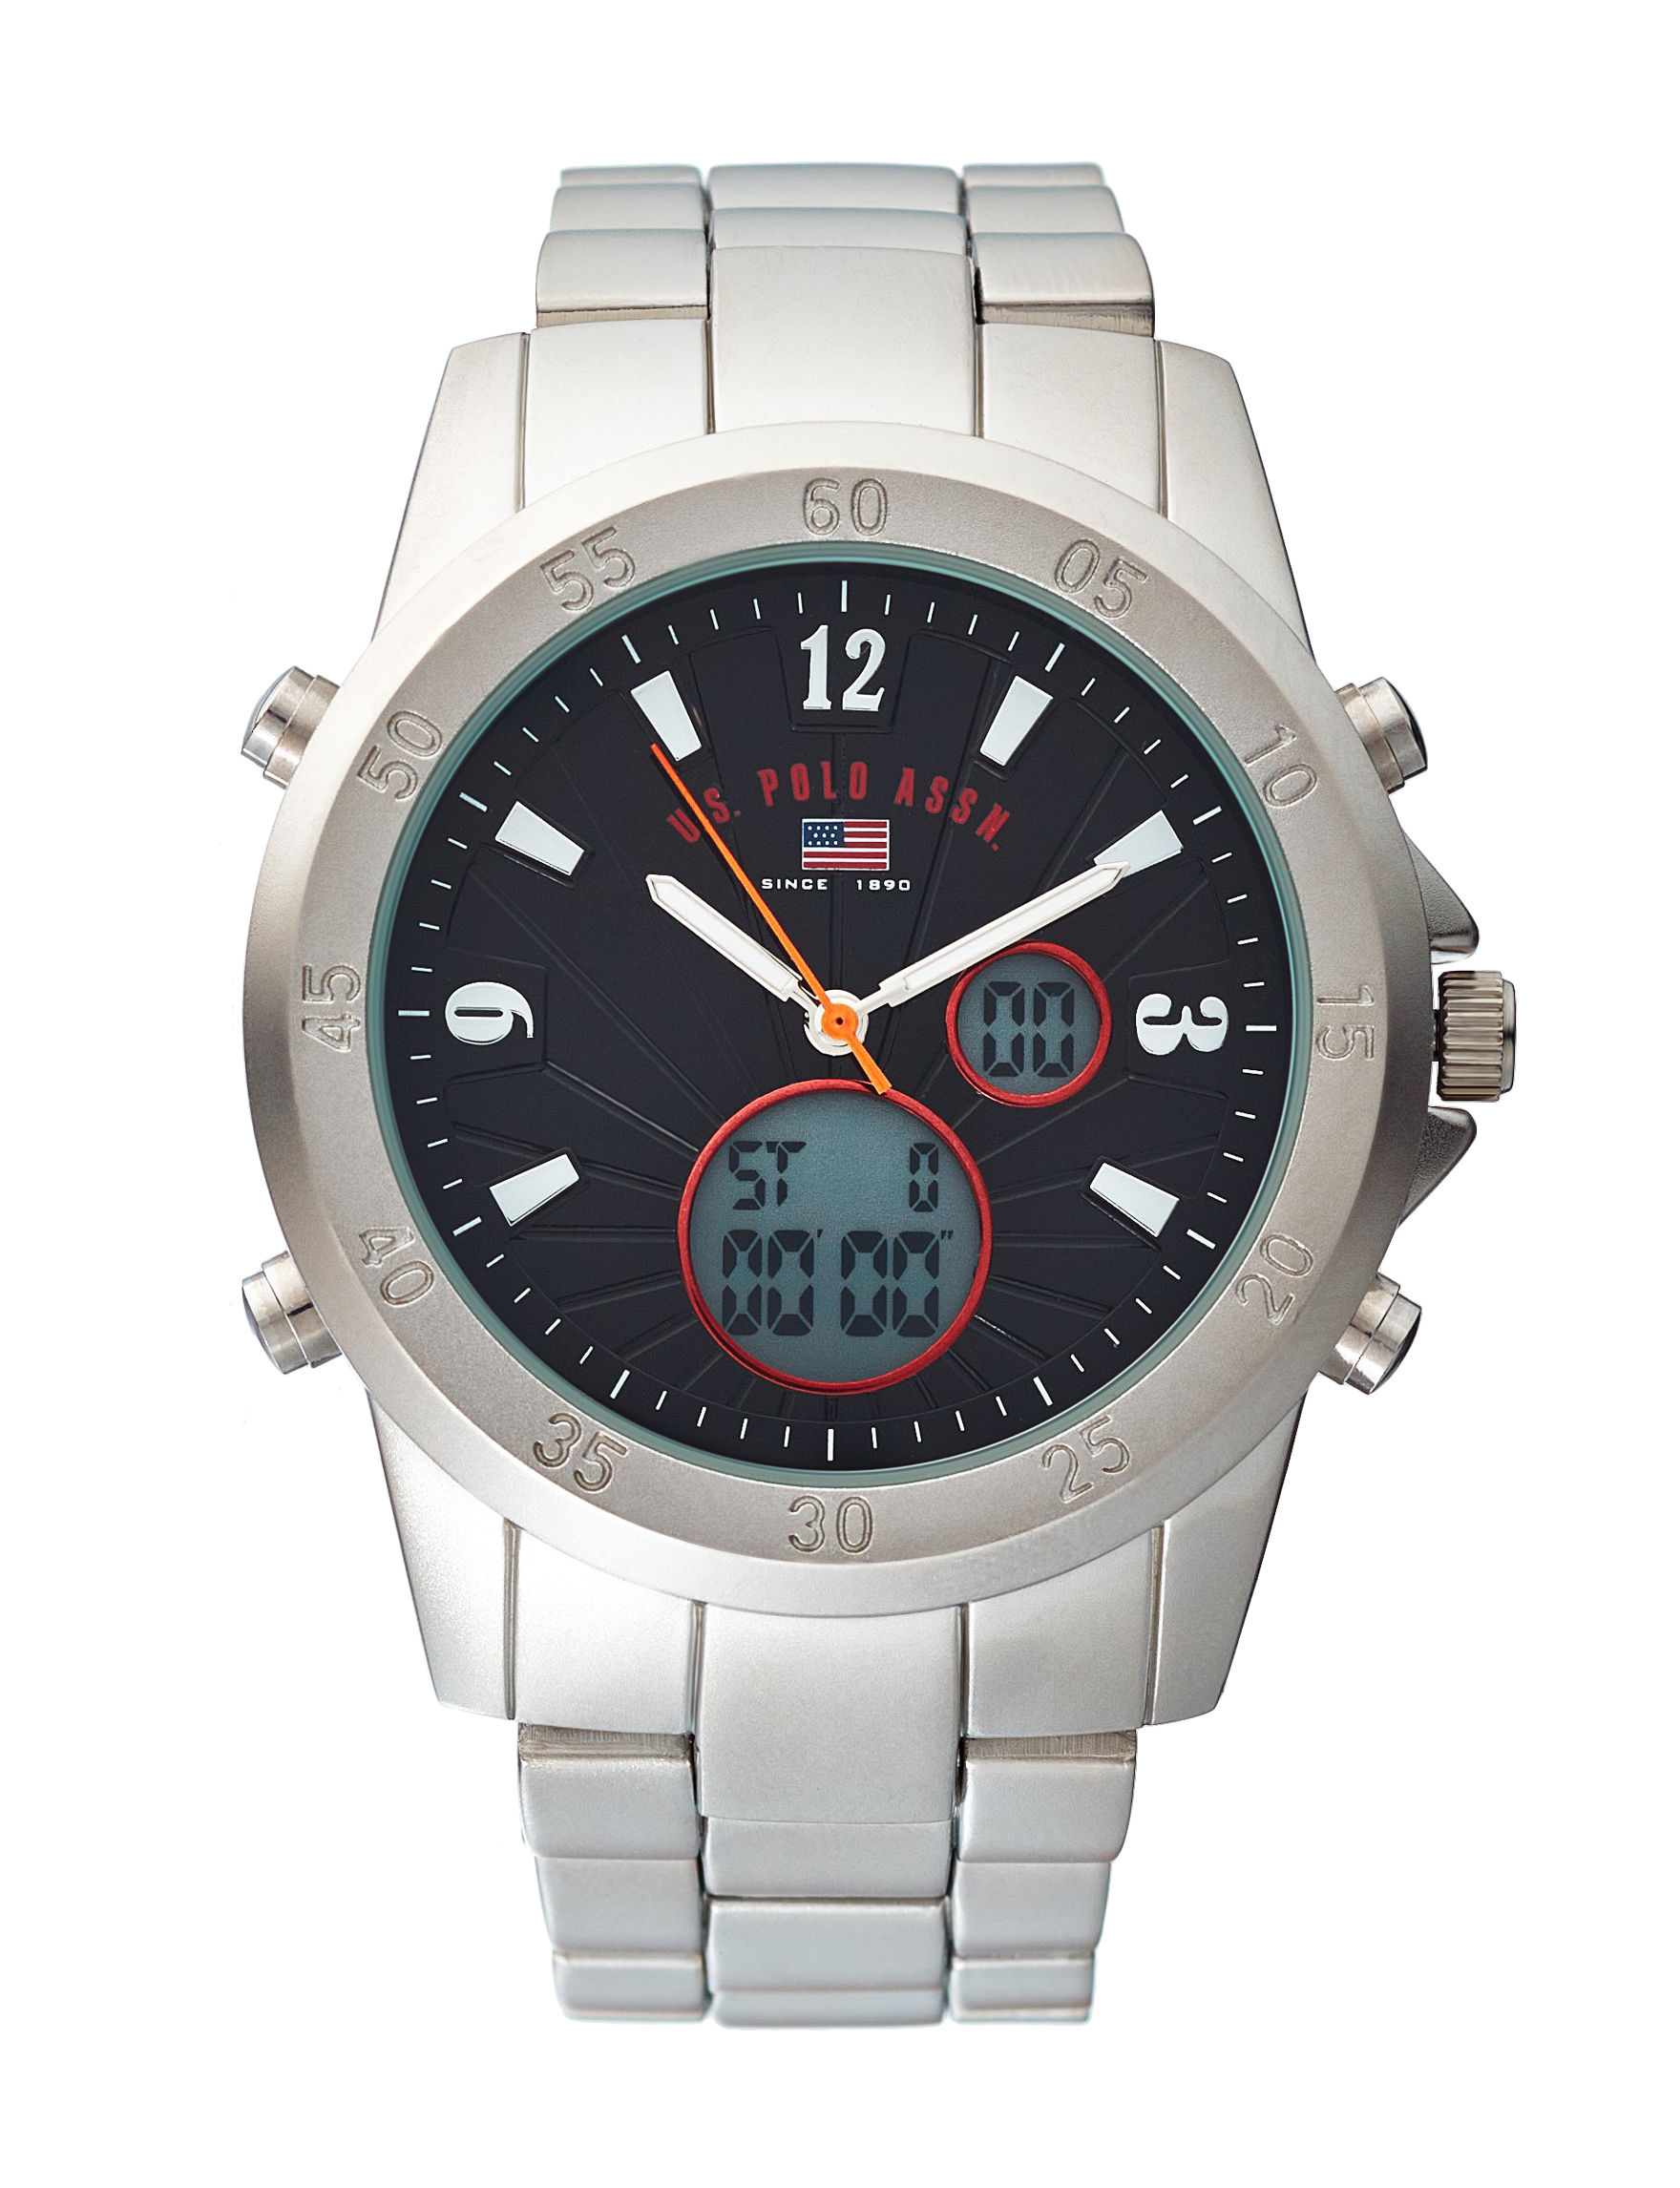 U.S. Polo Assn. Silver Fashion Watches